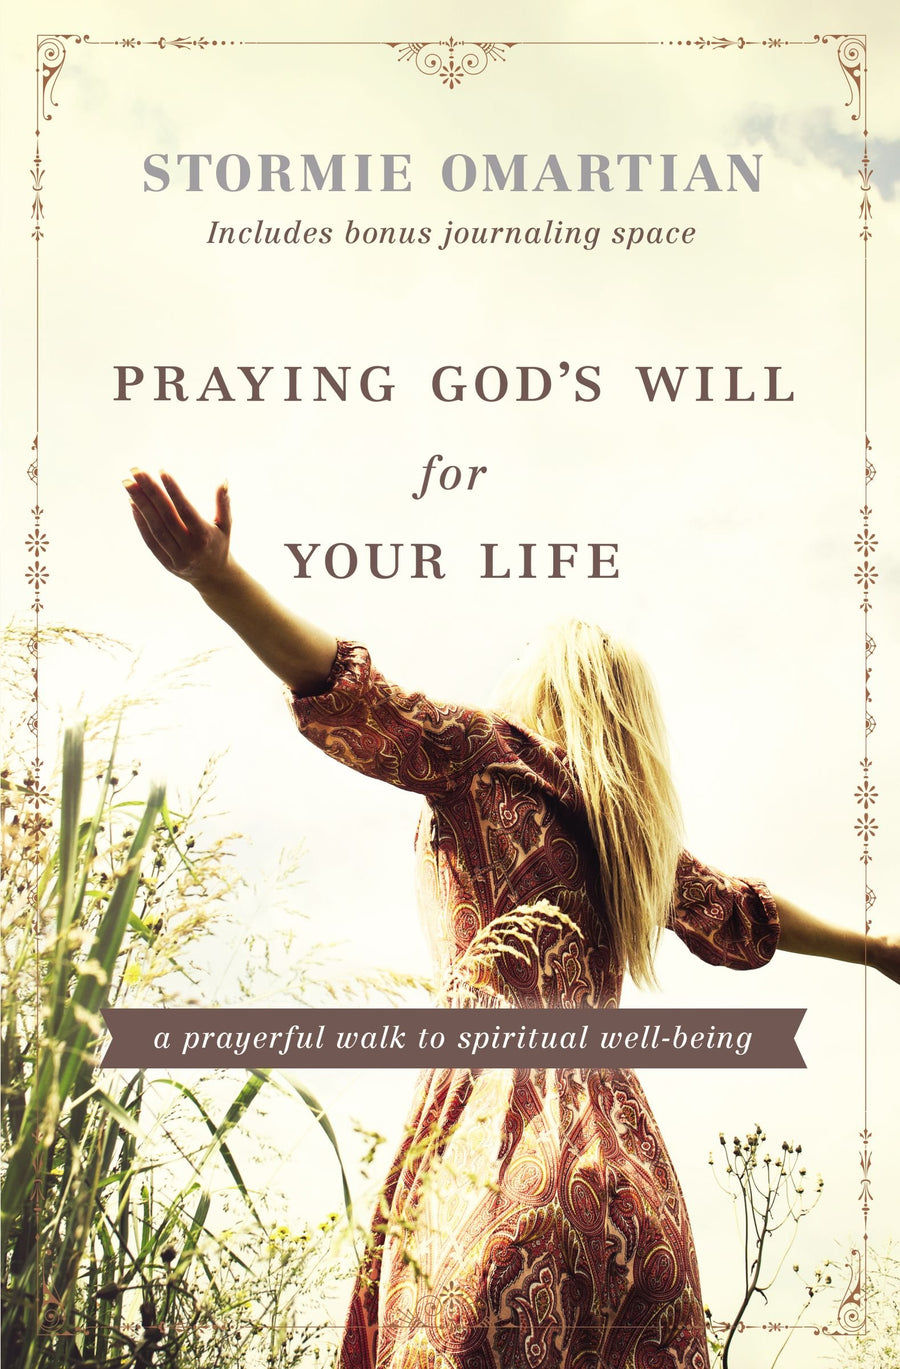 Praying God's Will For Your Life: A Prayerful Walk To Spiritual Well Being by Stormie Omartian